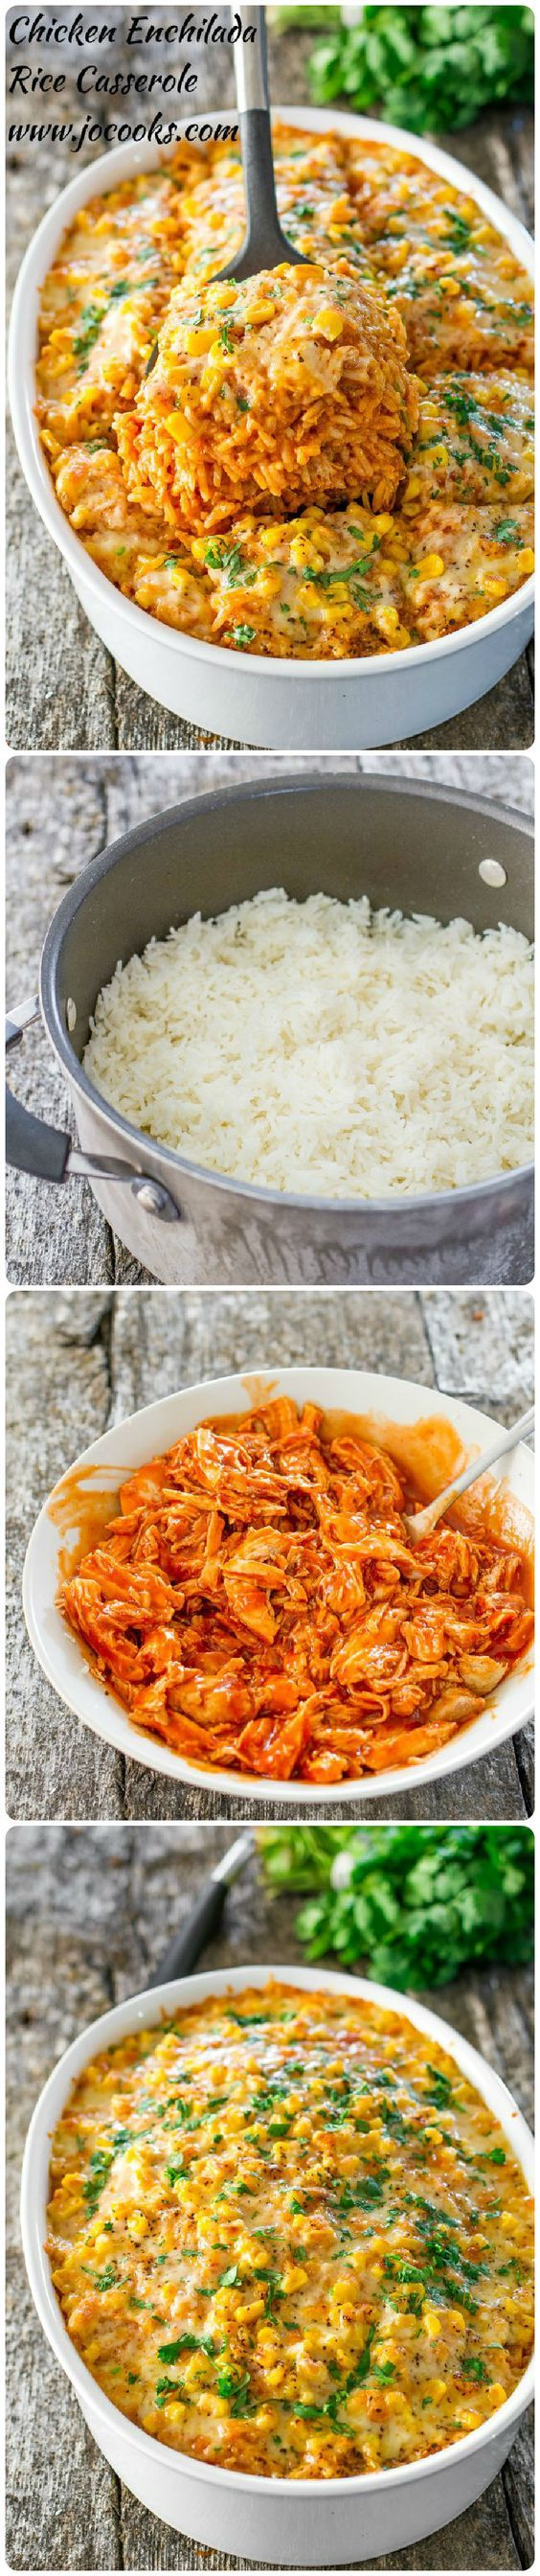 Chicken Enchilada Rice Casserole – all the makings of a chicken enchilada but with rice. It's simply delicious! (Cheese Making Low Carb)